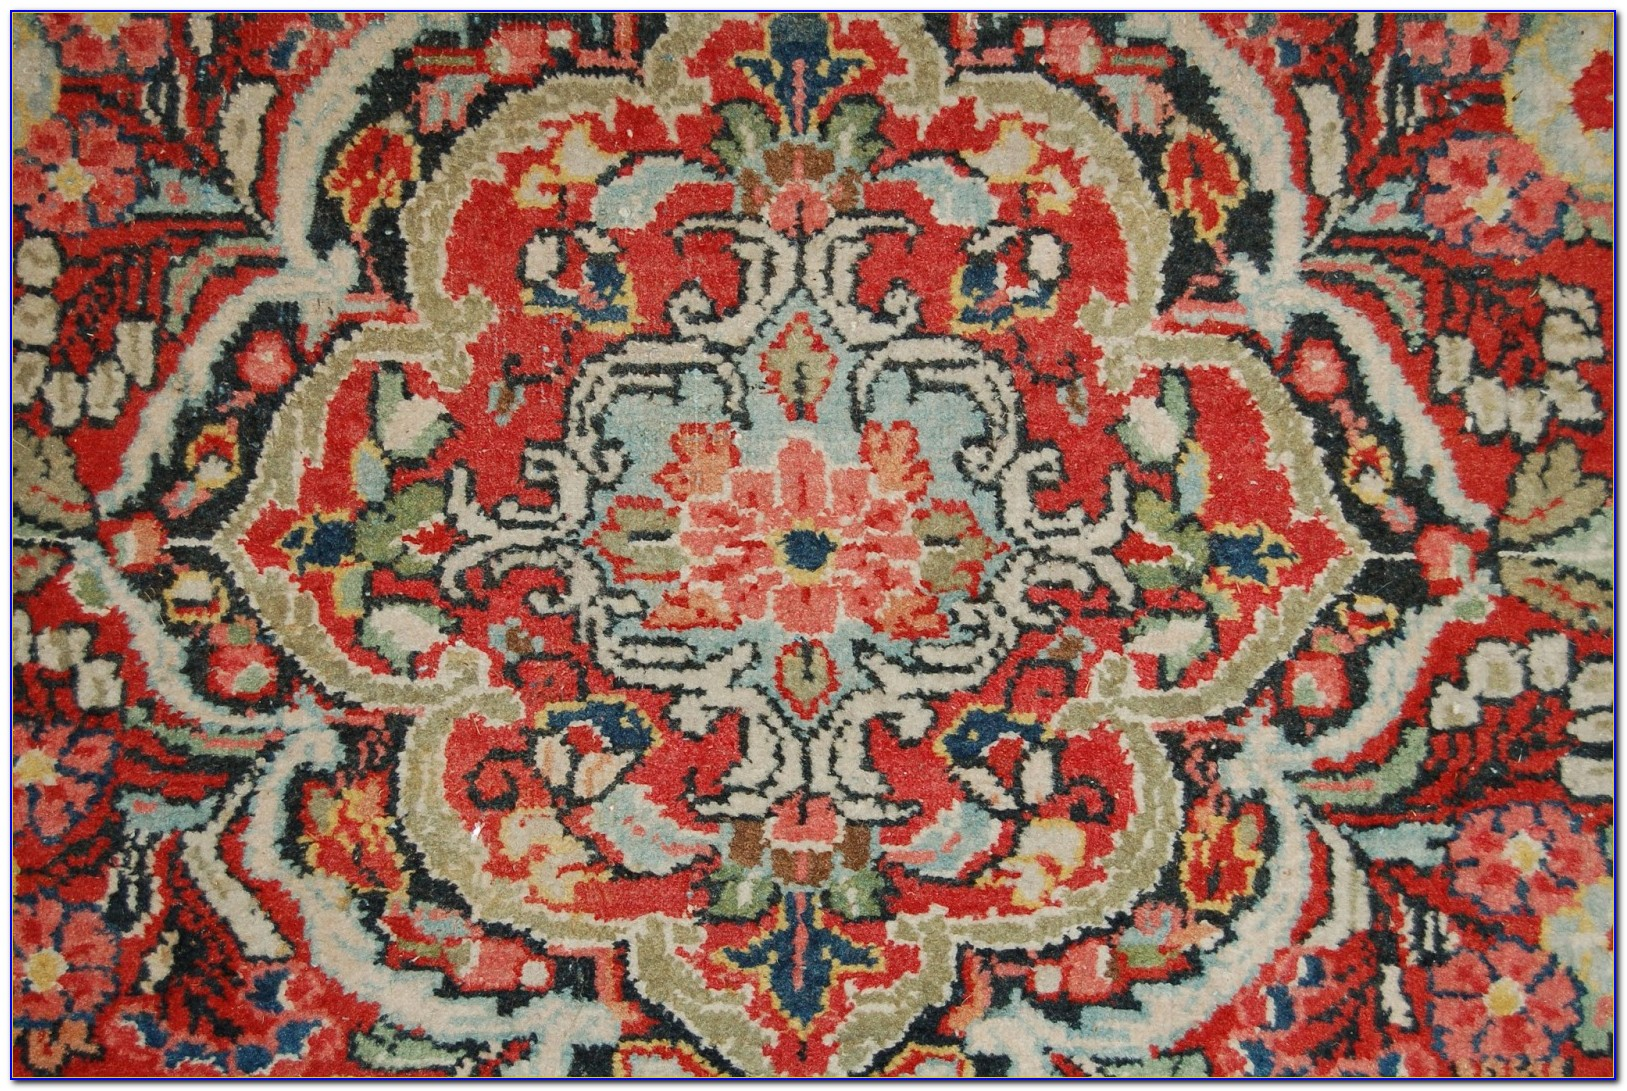 Persian Rug Cleaning Orange County Rugs Home Design Ideas Ggqnvllqxb57203